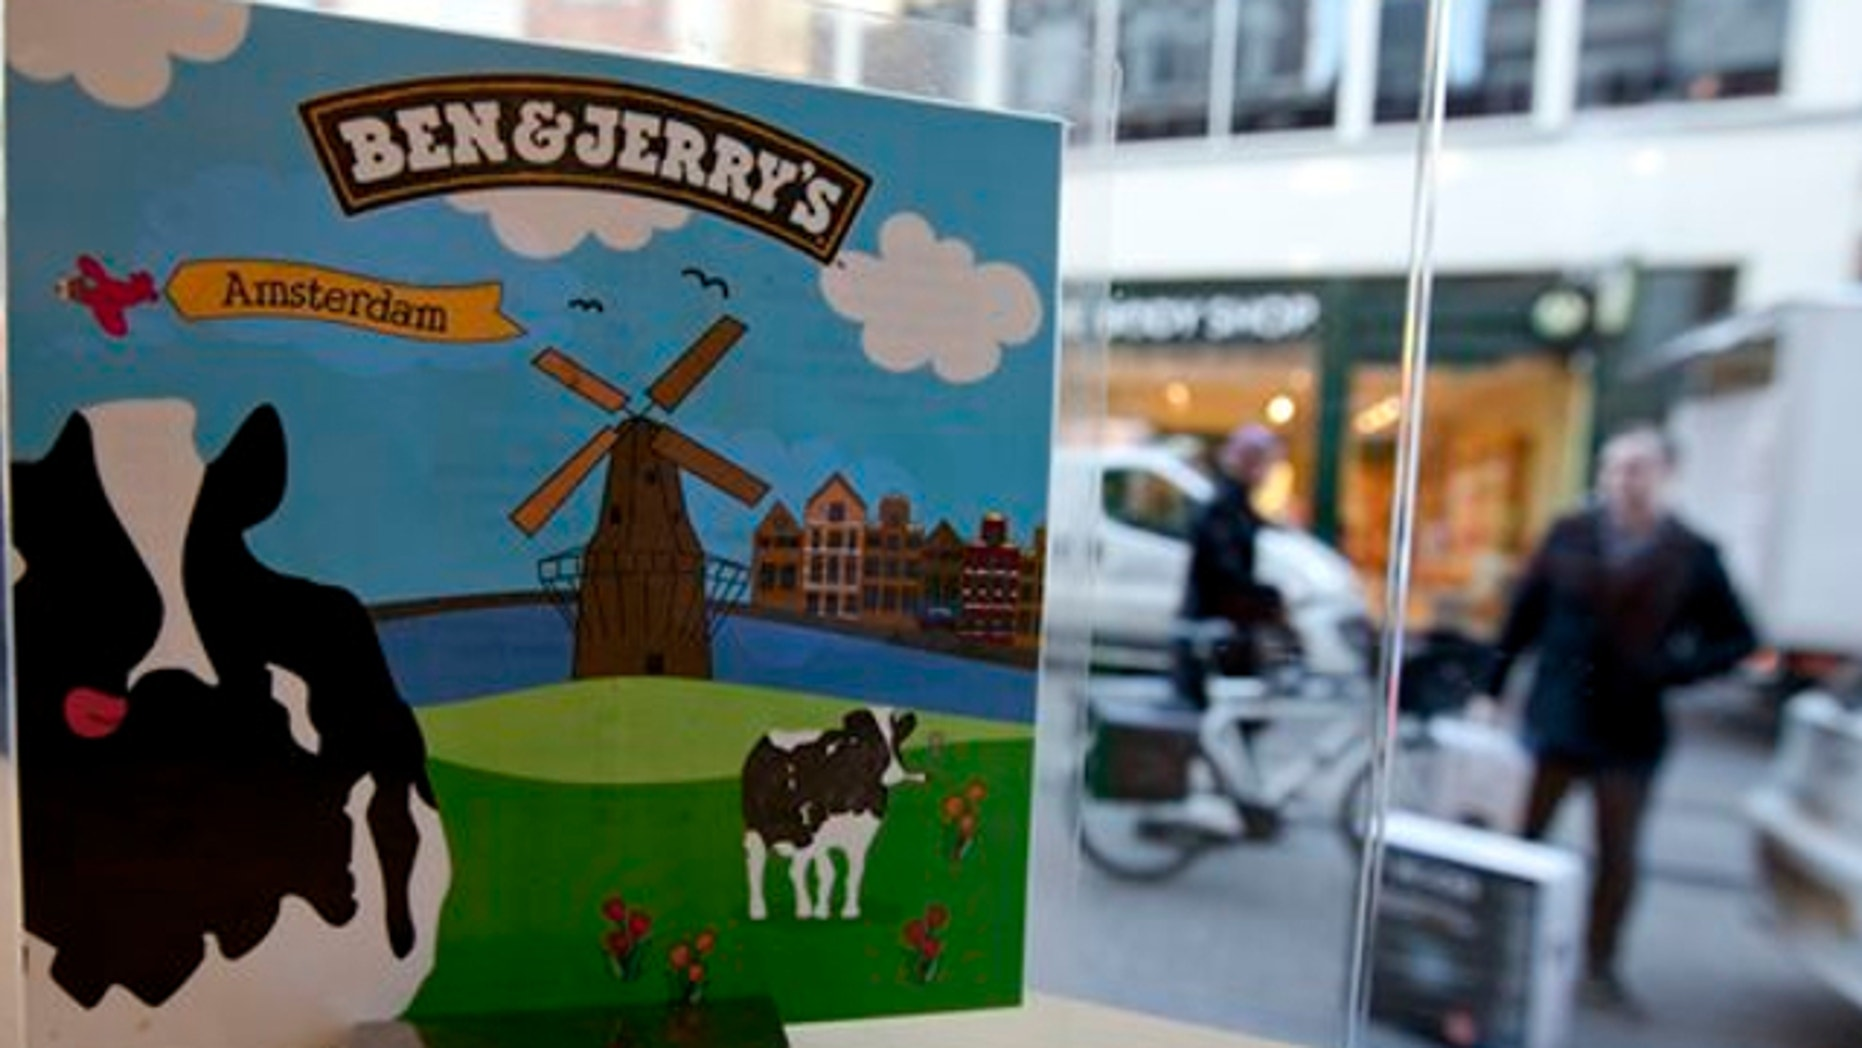 Feb. 2, 2012: People pass a Ben & Jerry's ice cream franchise store in Amsterdam, Netherlands.